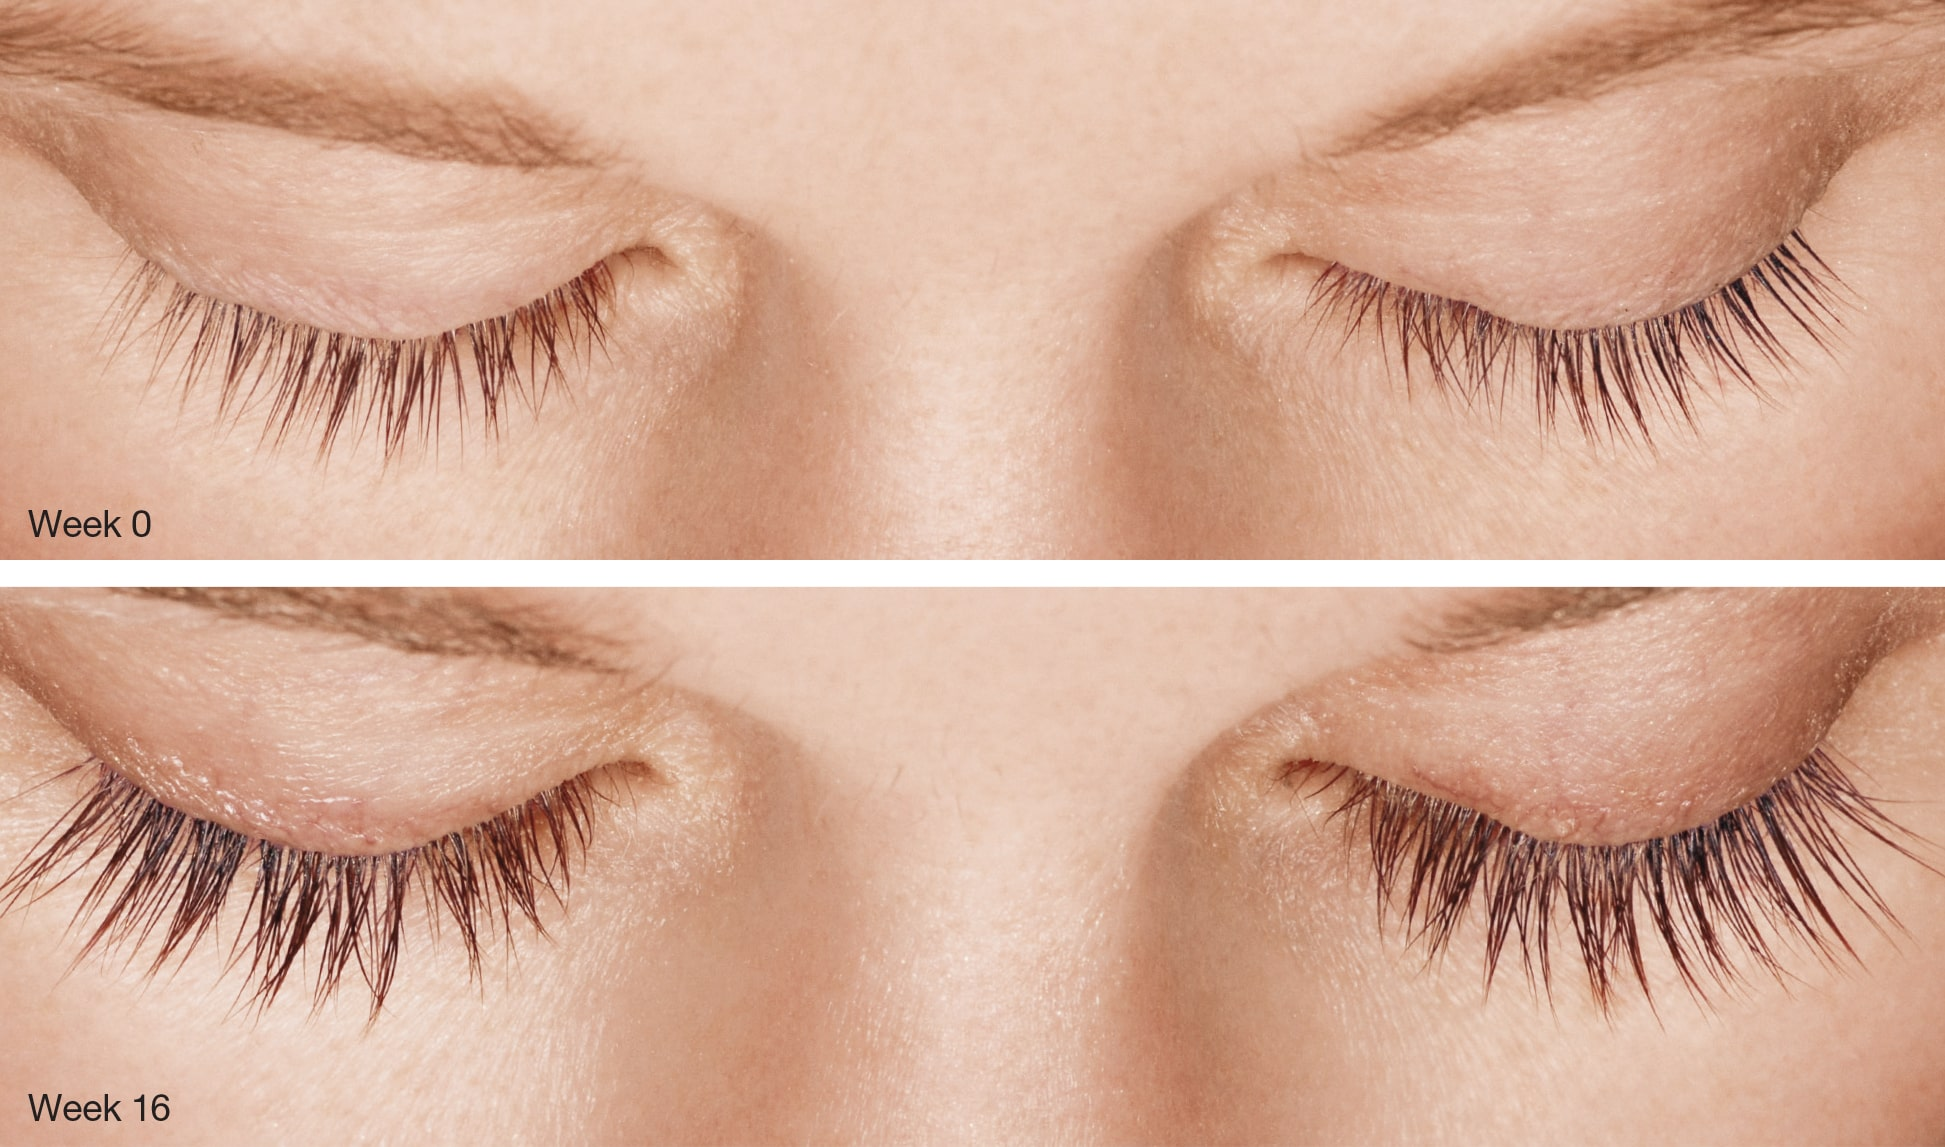 Latisse longer eyelashes - LIV Medical Weight Loss & Aesthetics in Boynton Beach